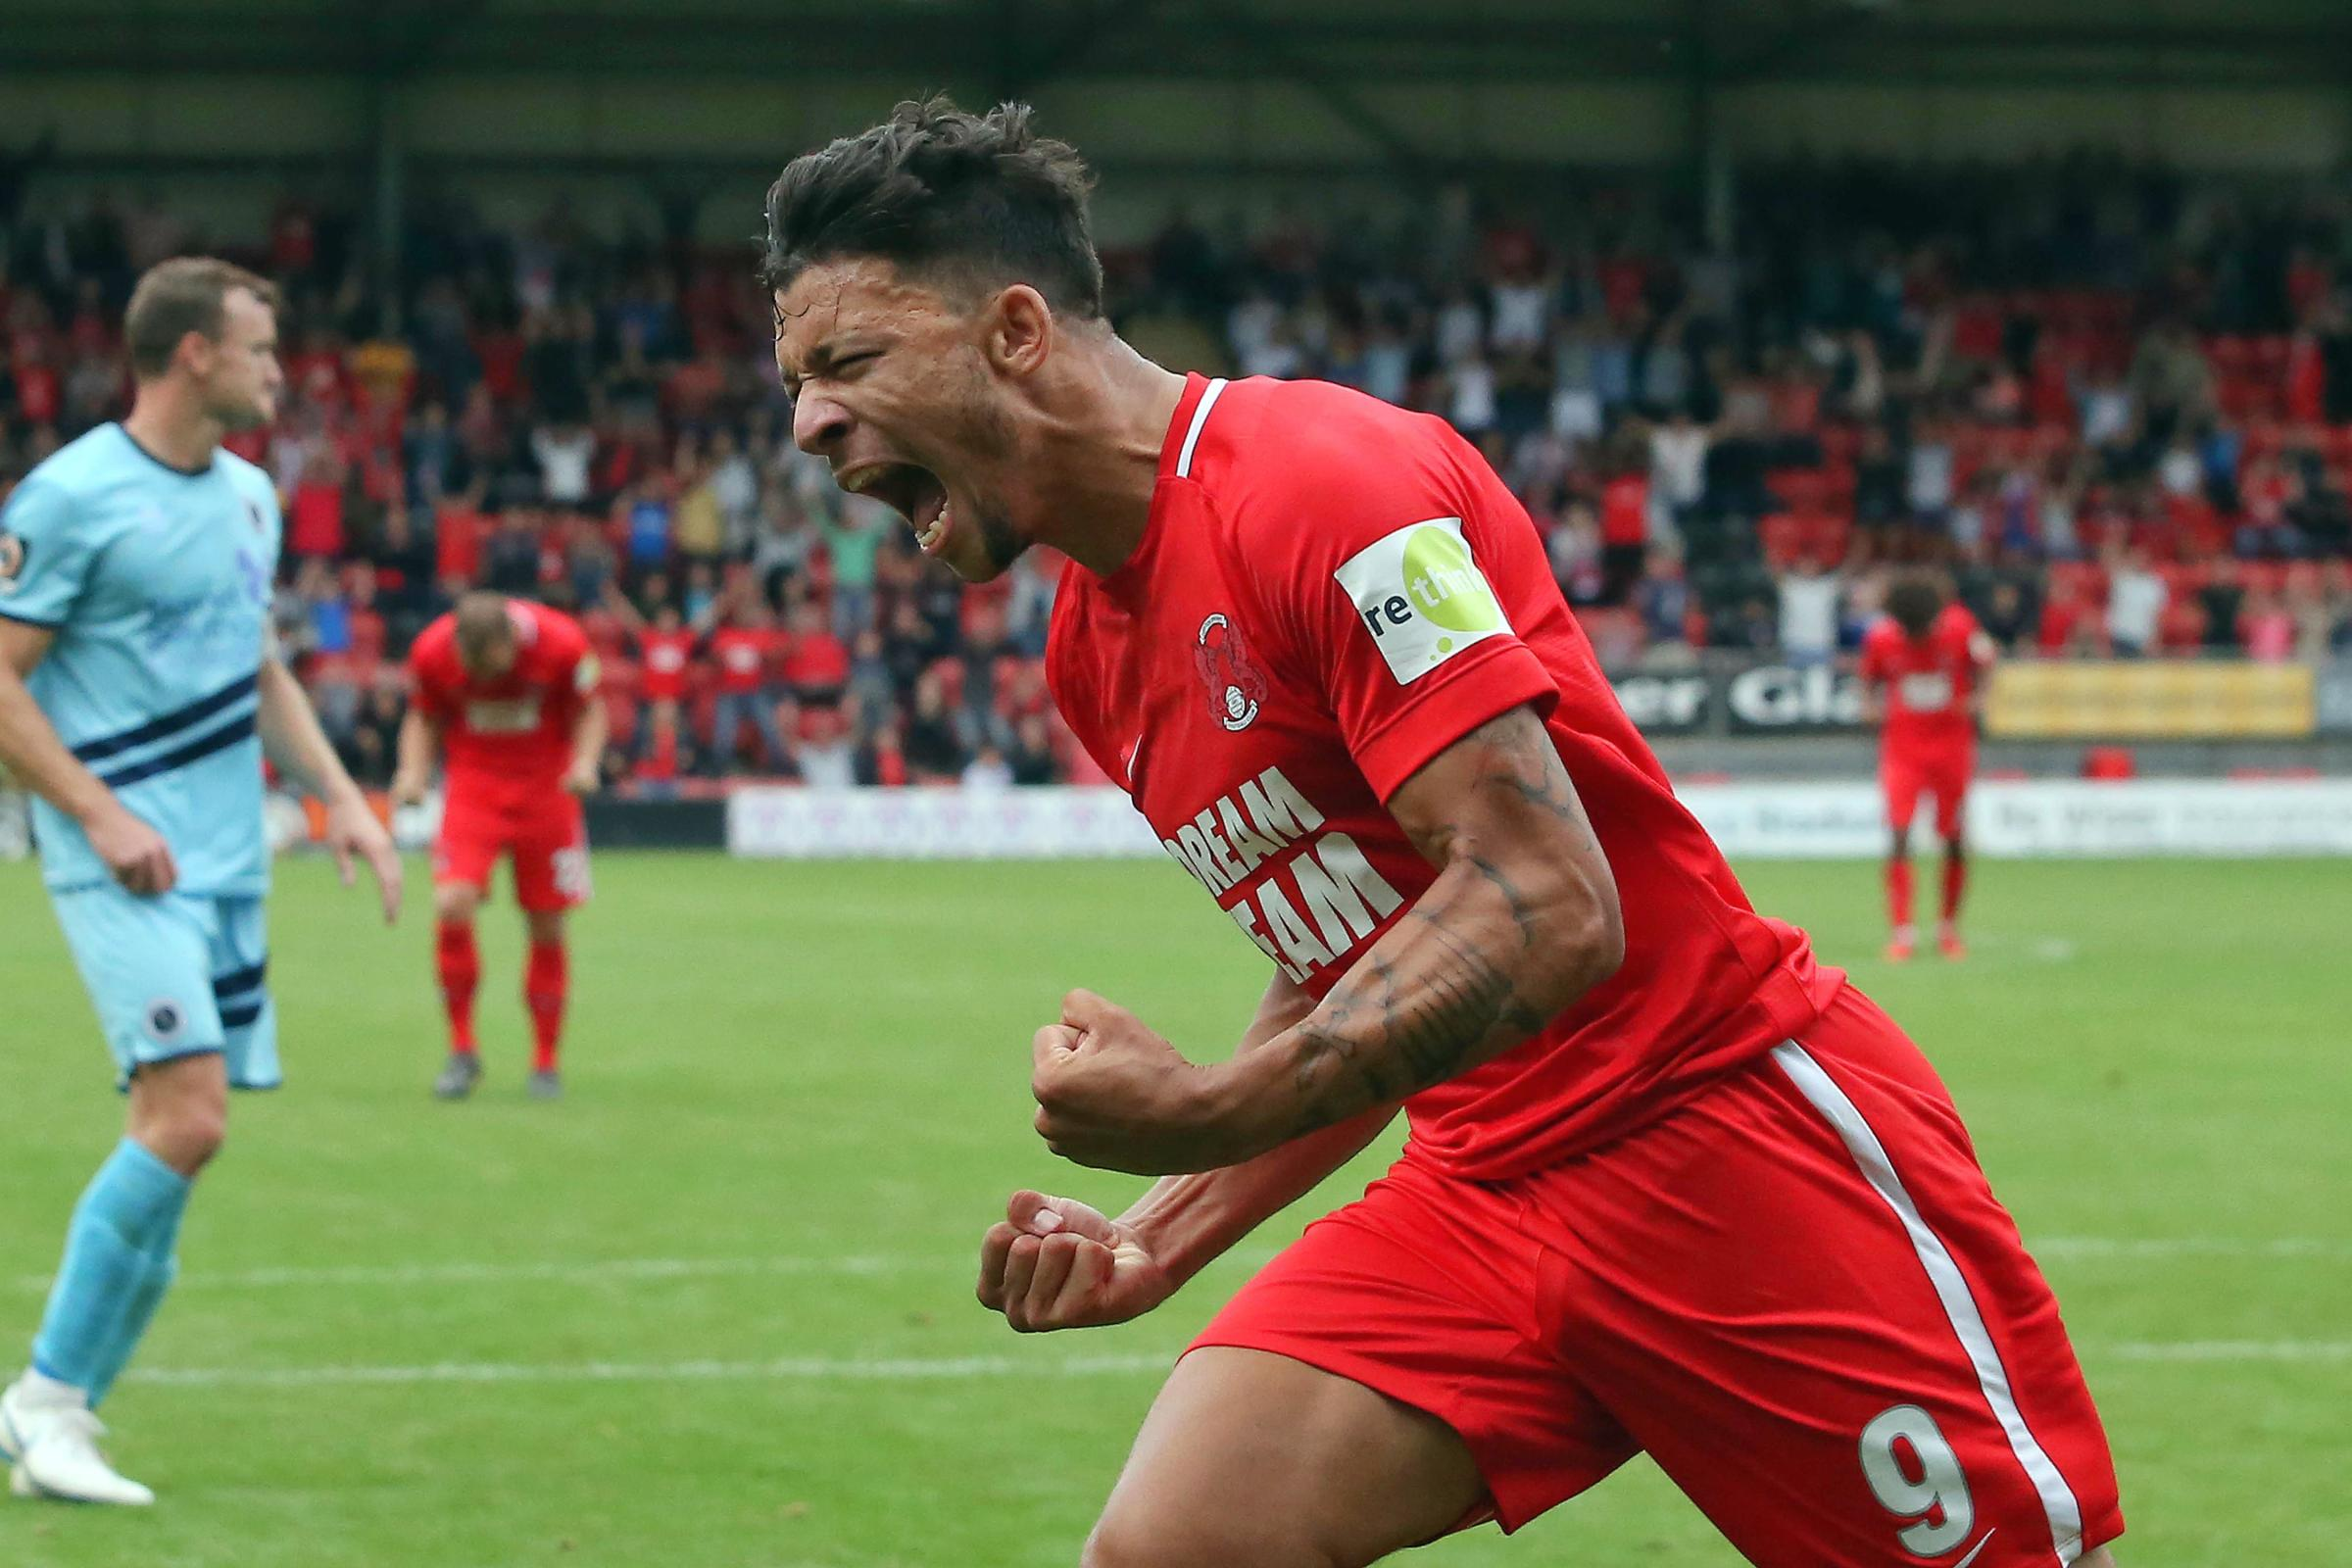 Macauley Bonne leaves Leyton Orient for Charlton Athletic | Epping Forest Guardian